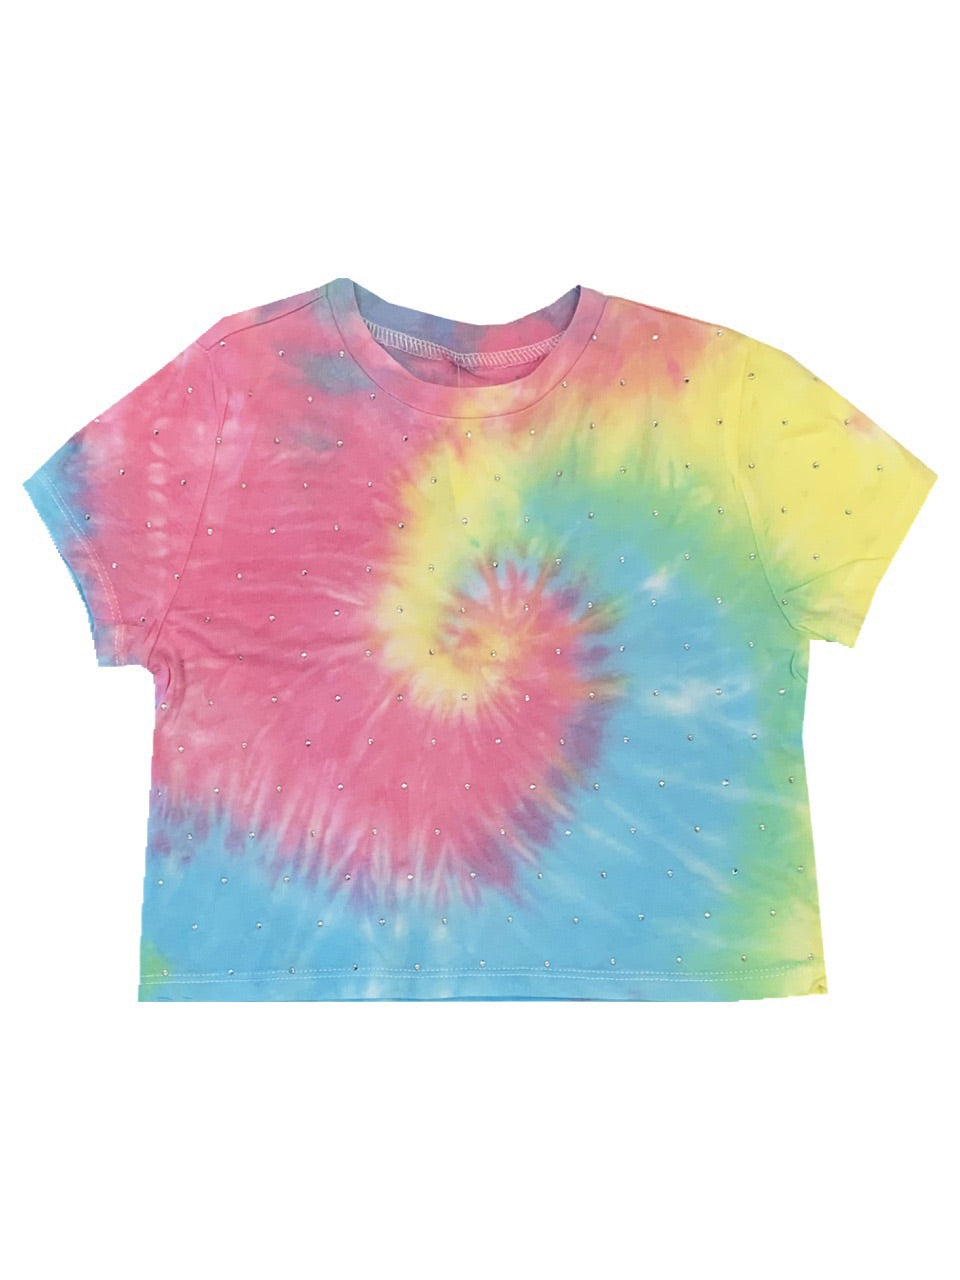 KatieJ Super Soft Tie Dye T-Shirt with Stones